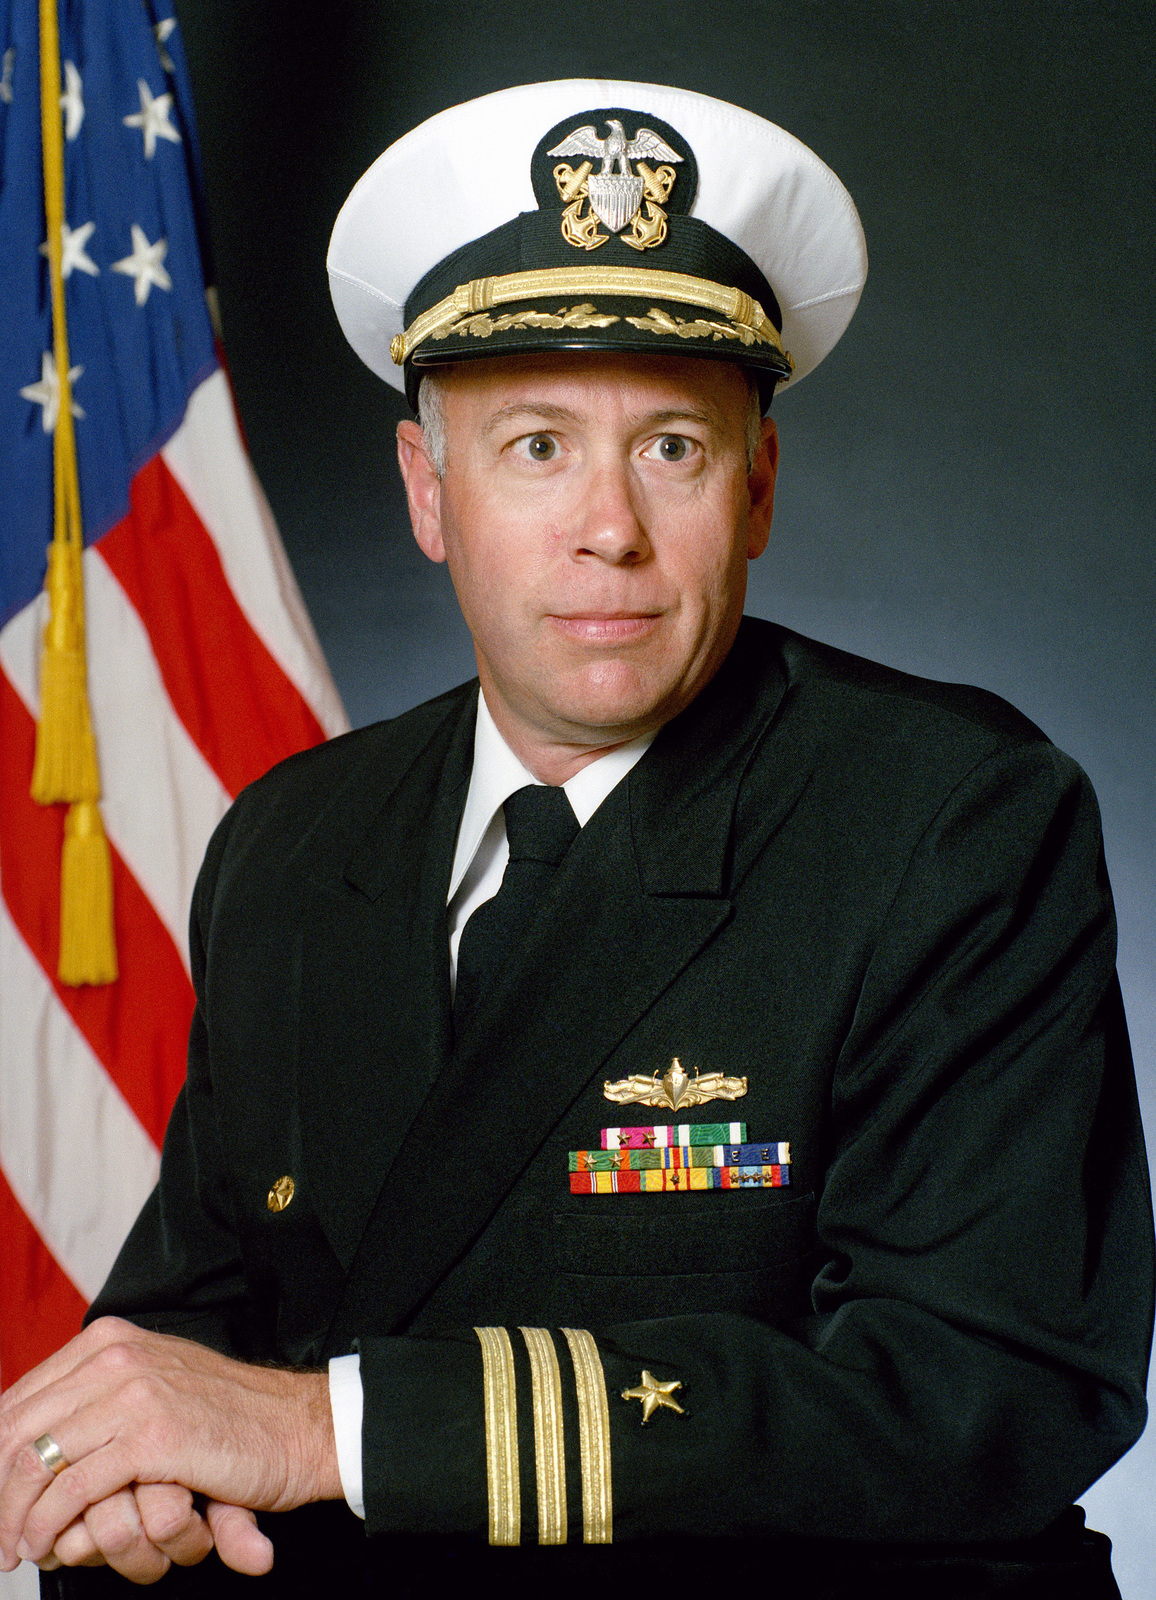 Commander Robert P. Farrington, USN (covered)